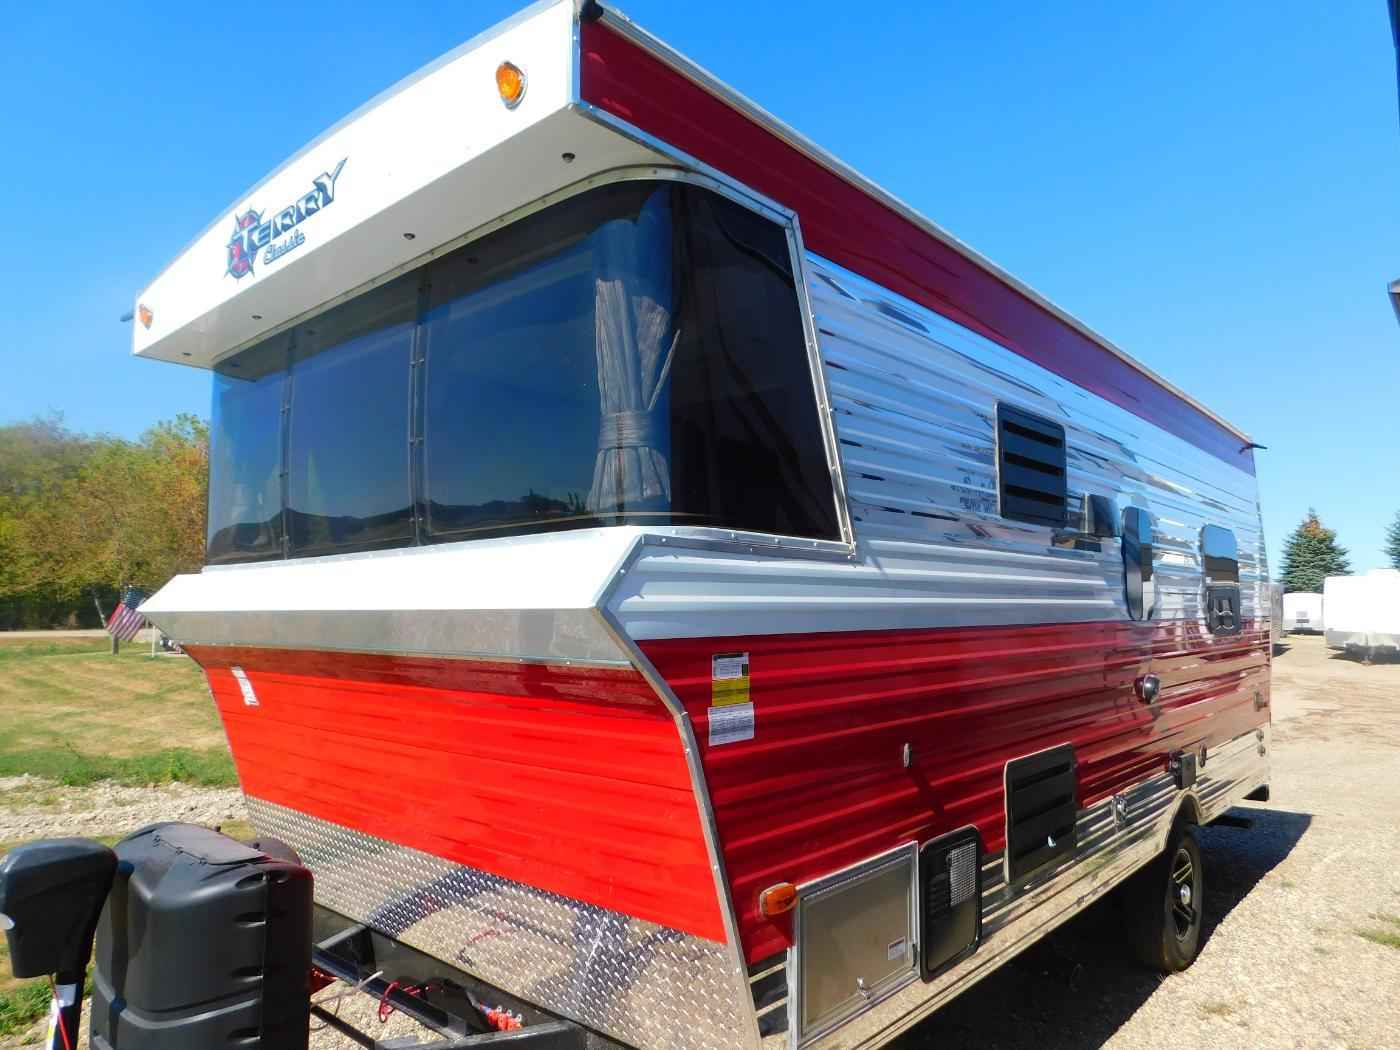 2018 New Heartland Rv Terry V21 Travel Trailer in Wisconsin WI